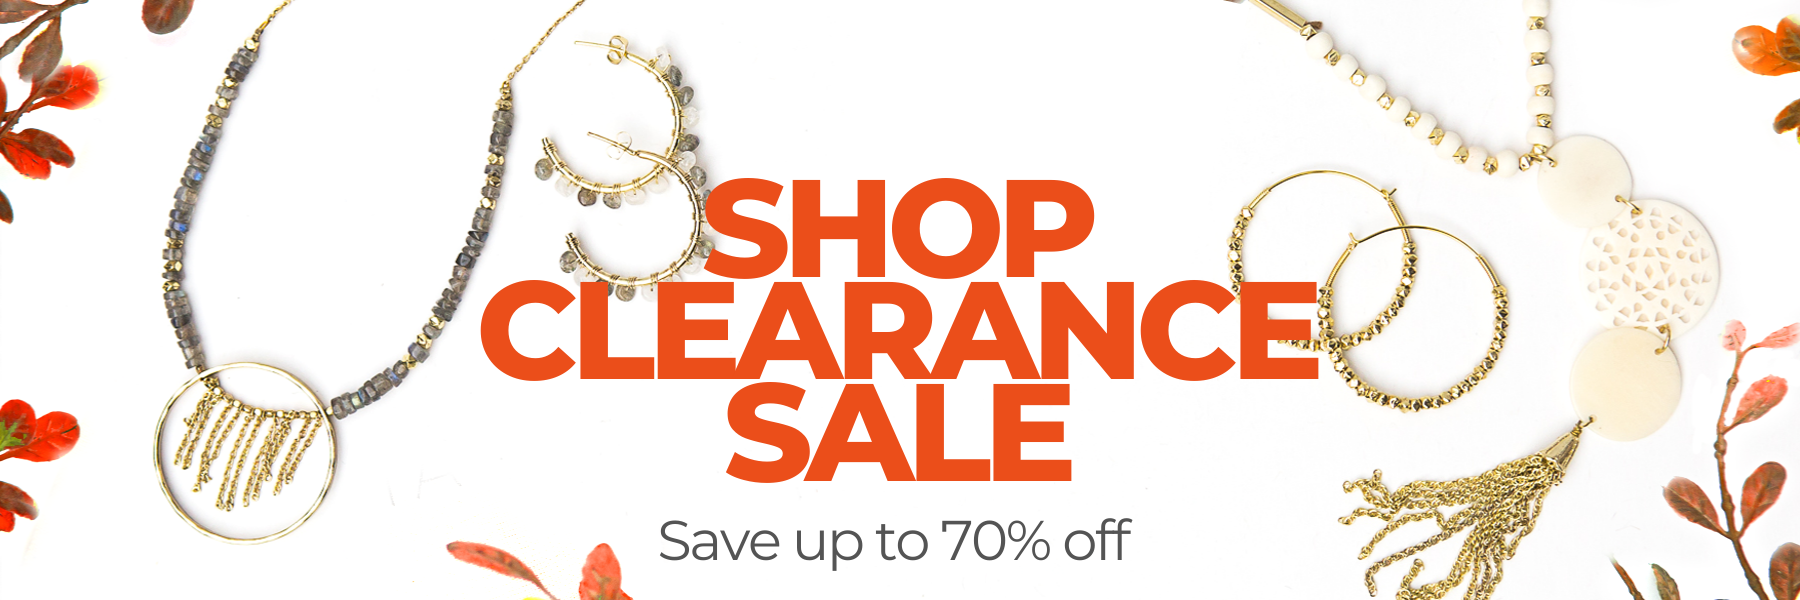 Shop Clearance Sale Up to 70% off | Fair Anita